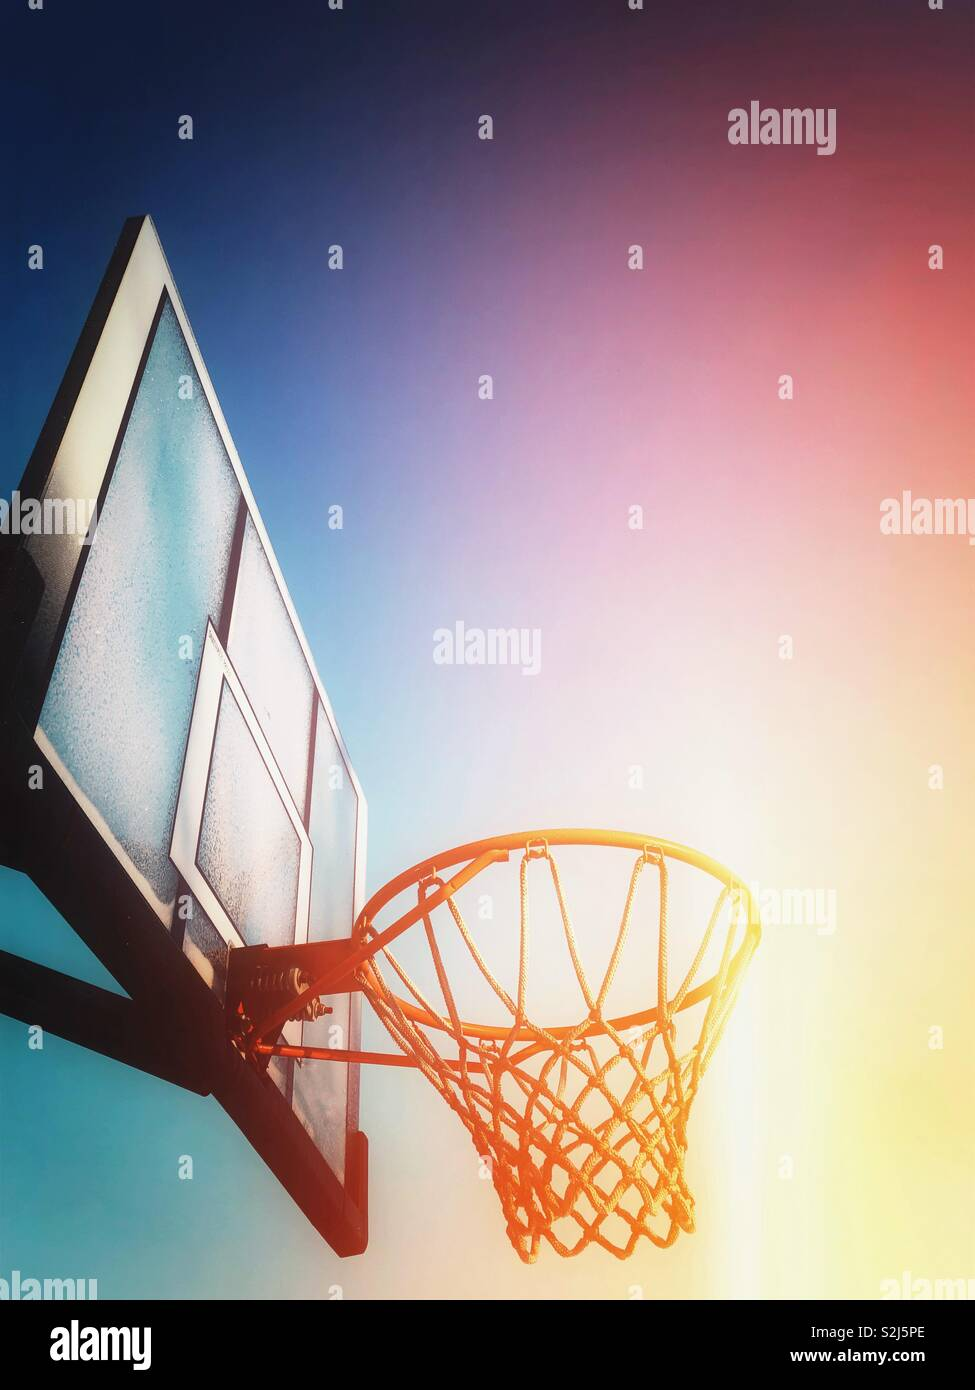 Looking up at basketball net - Stock Image